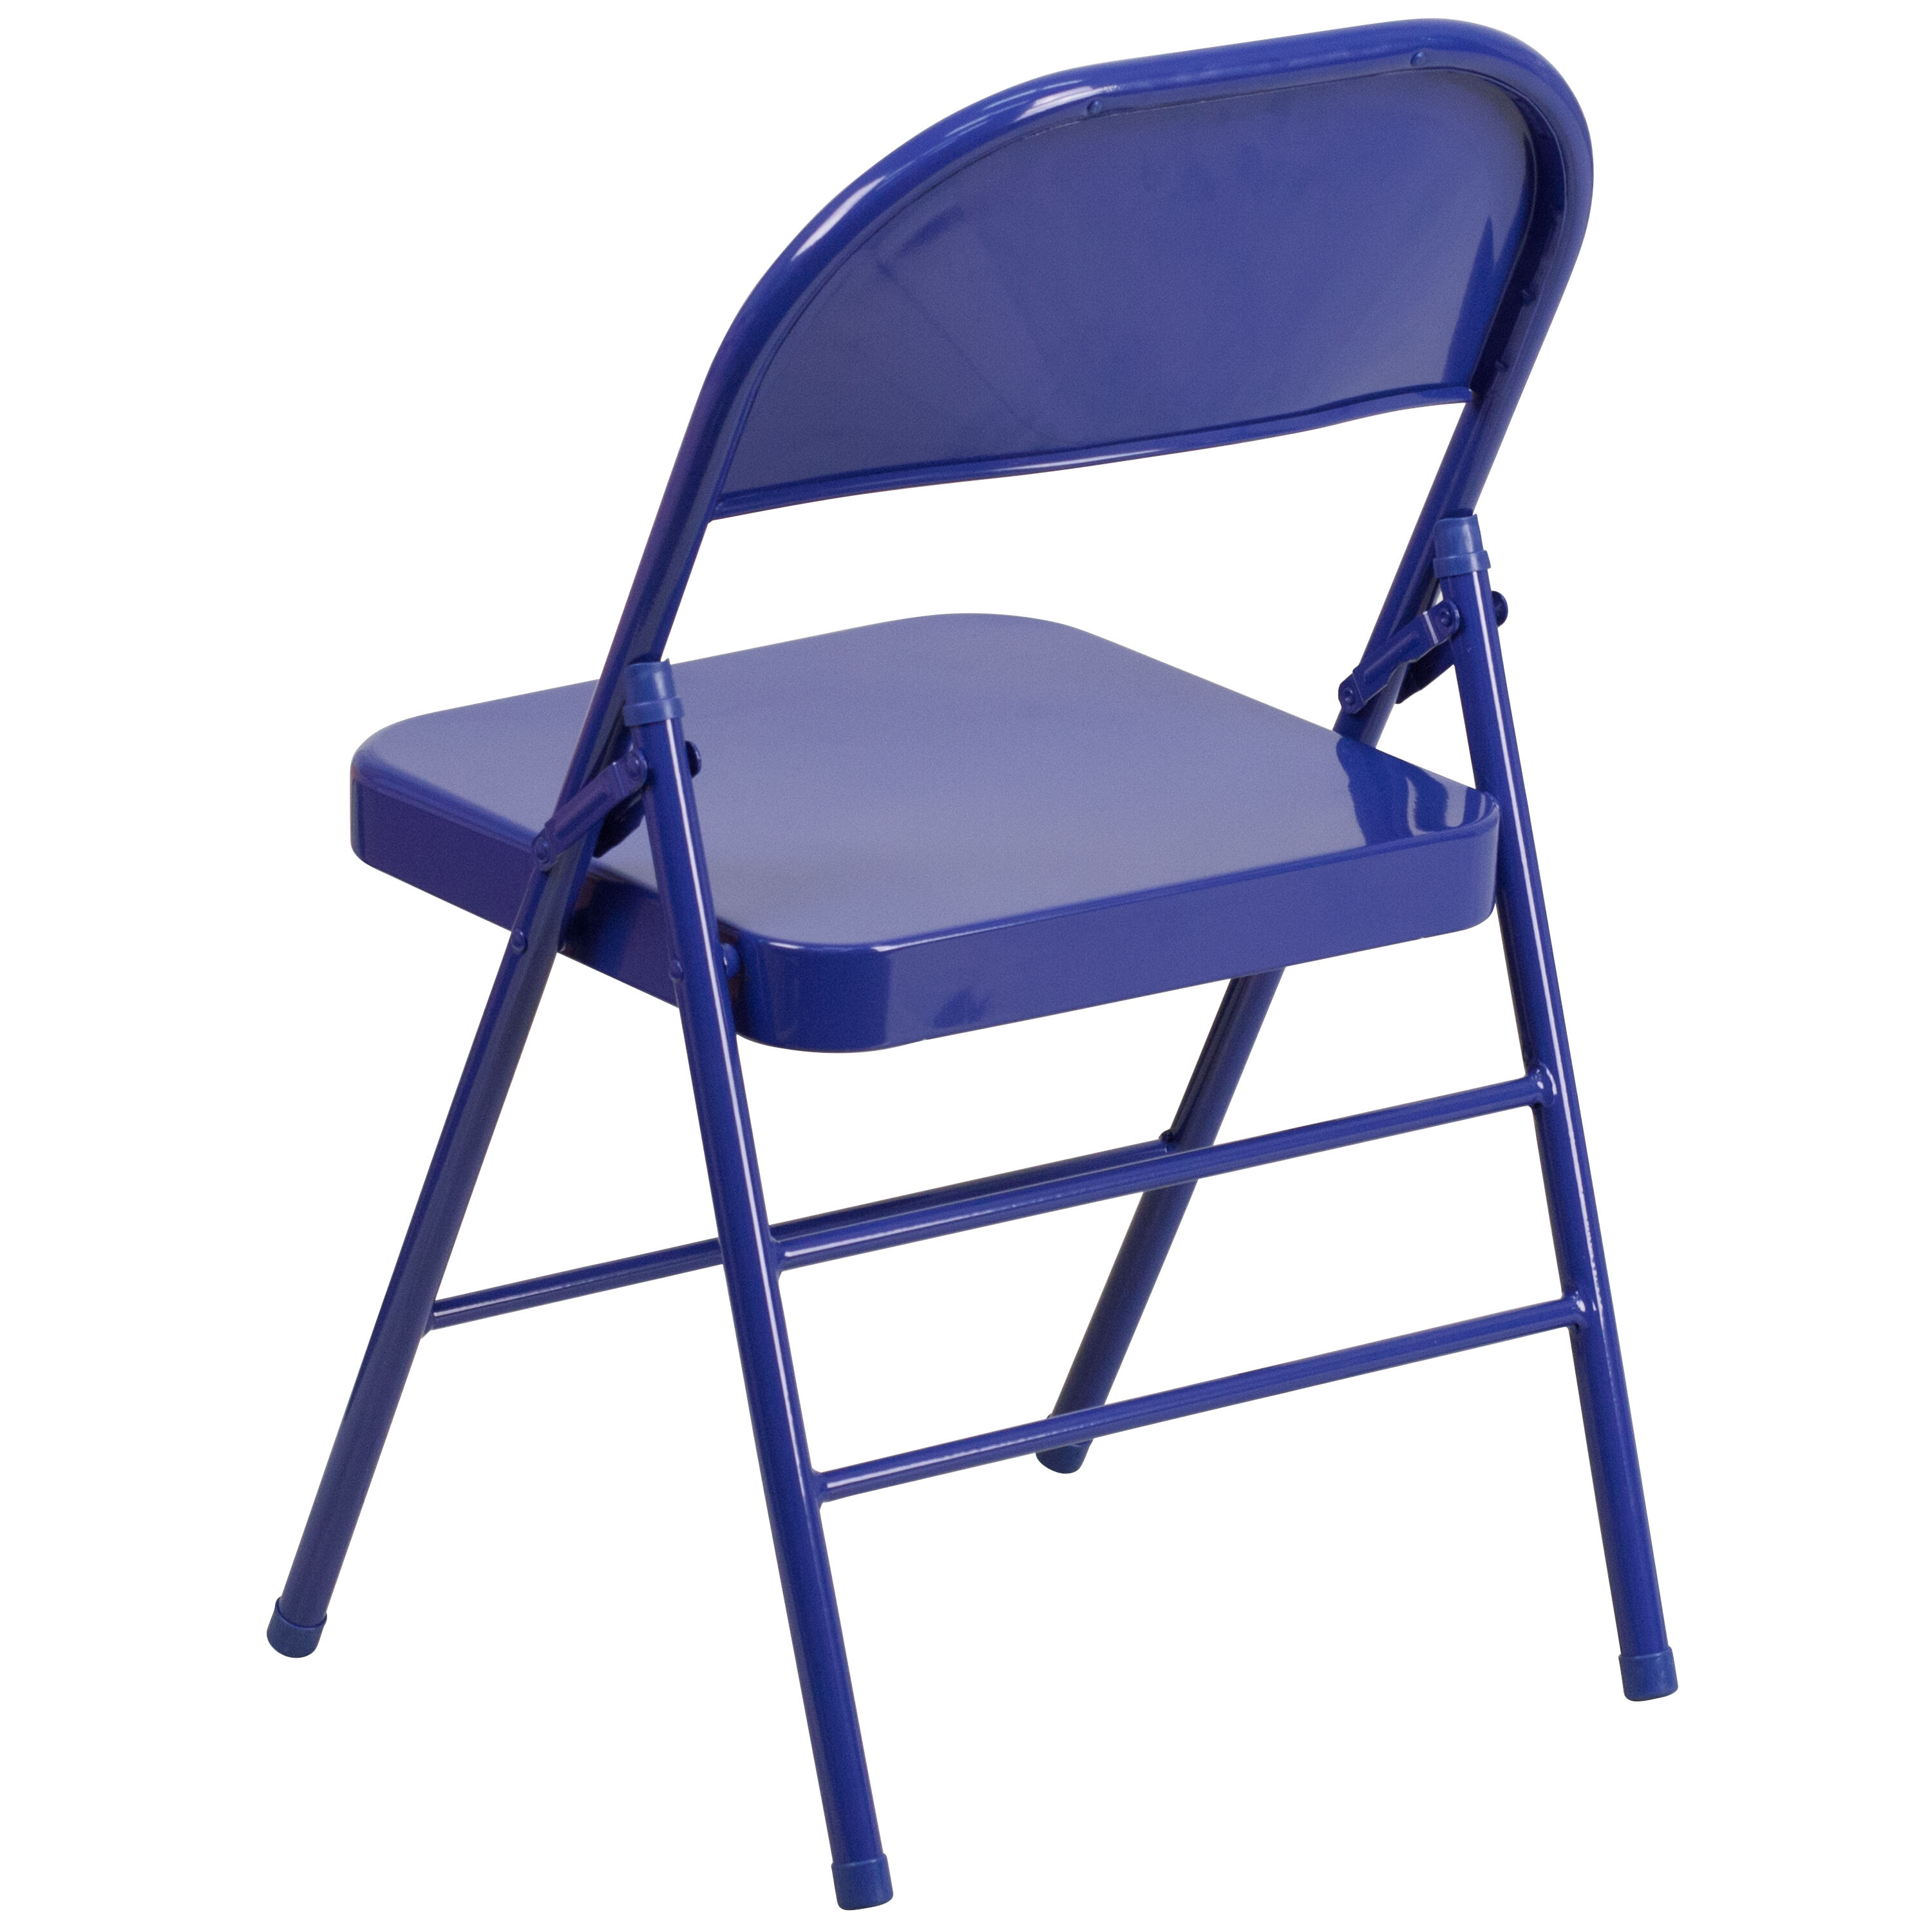 Blue Folding Chairs Cobalt Blue Folding Chair Hf3 Blue Gg